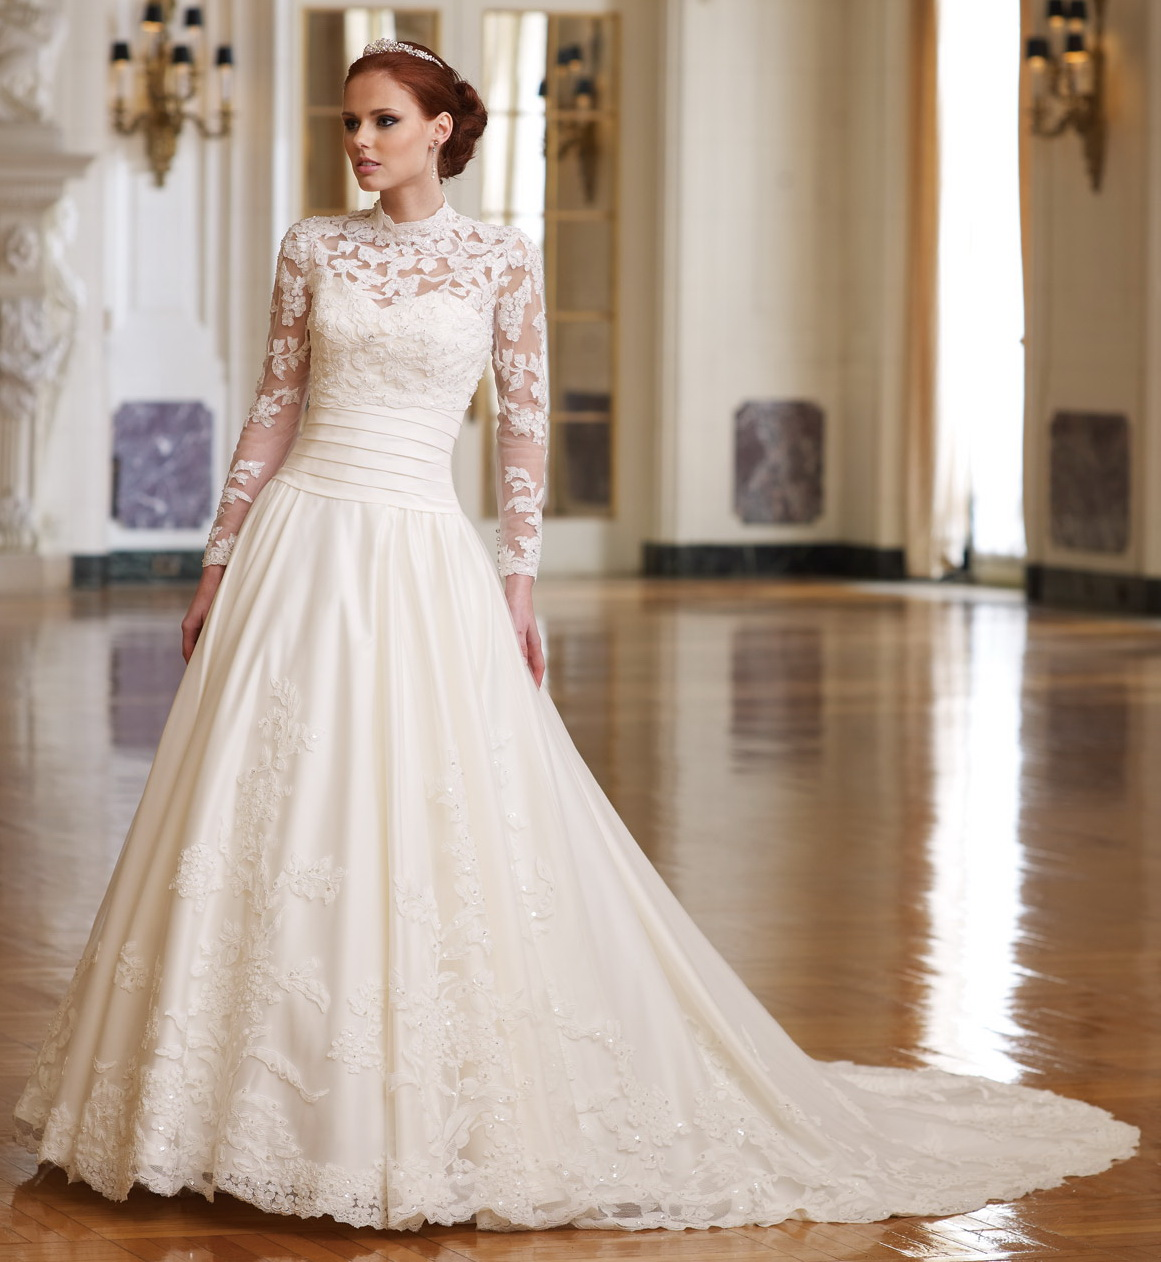 Wedding Dress Images Lace : Lace wedding dress